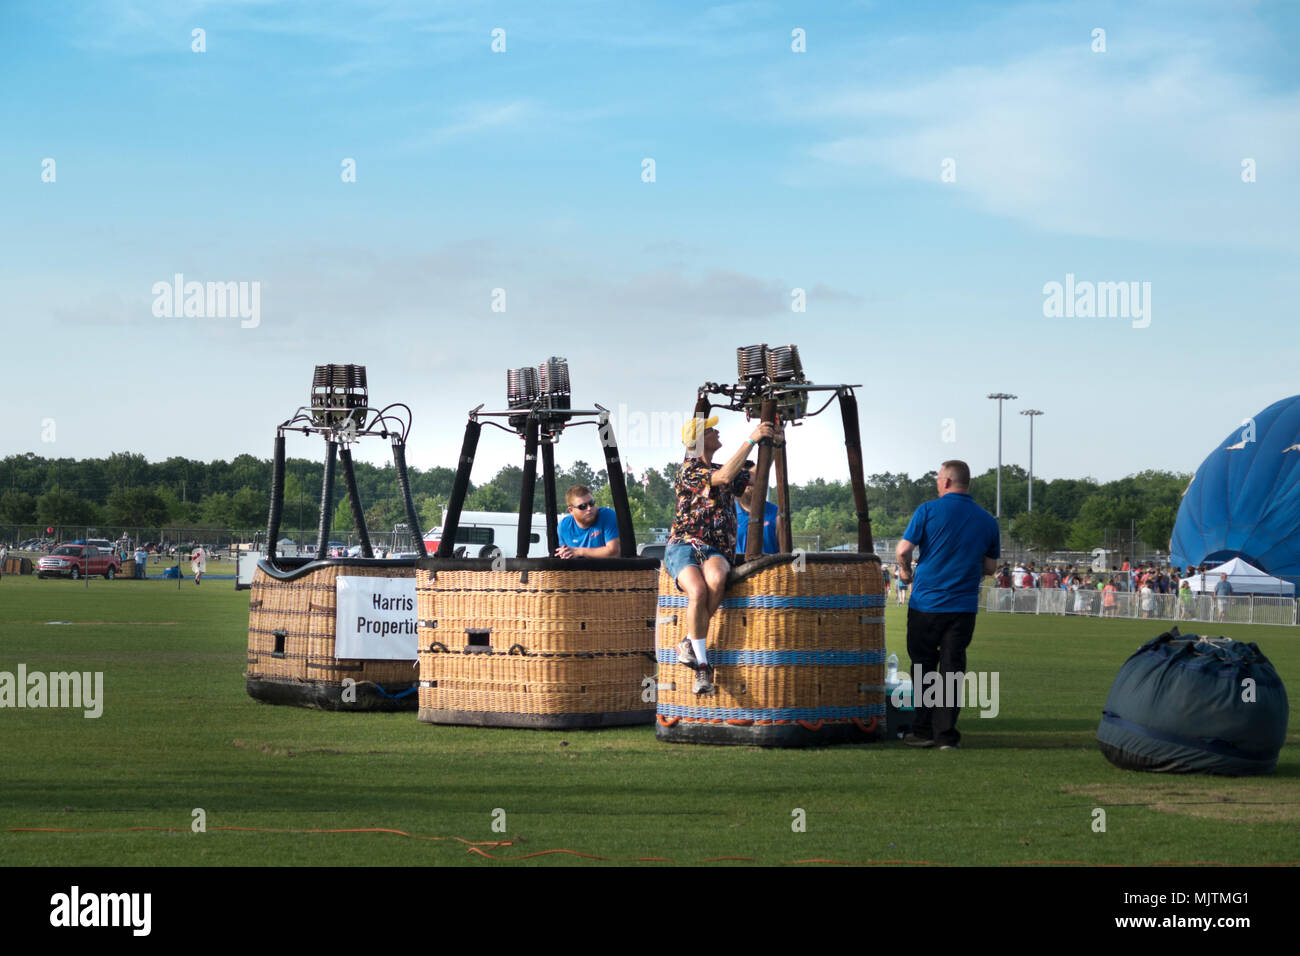 Preflight check on gas controls in the baskets of hot air ballons at the 14th annual Hot Air Balloon Festival at Foley, Alabama. - Stock Image